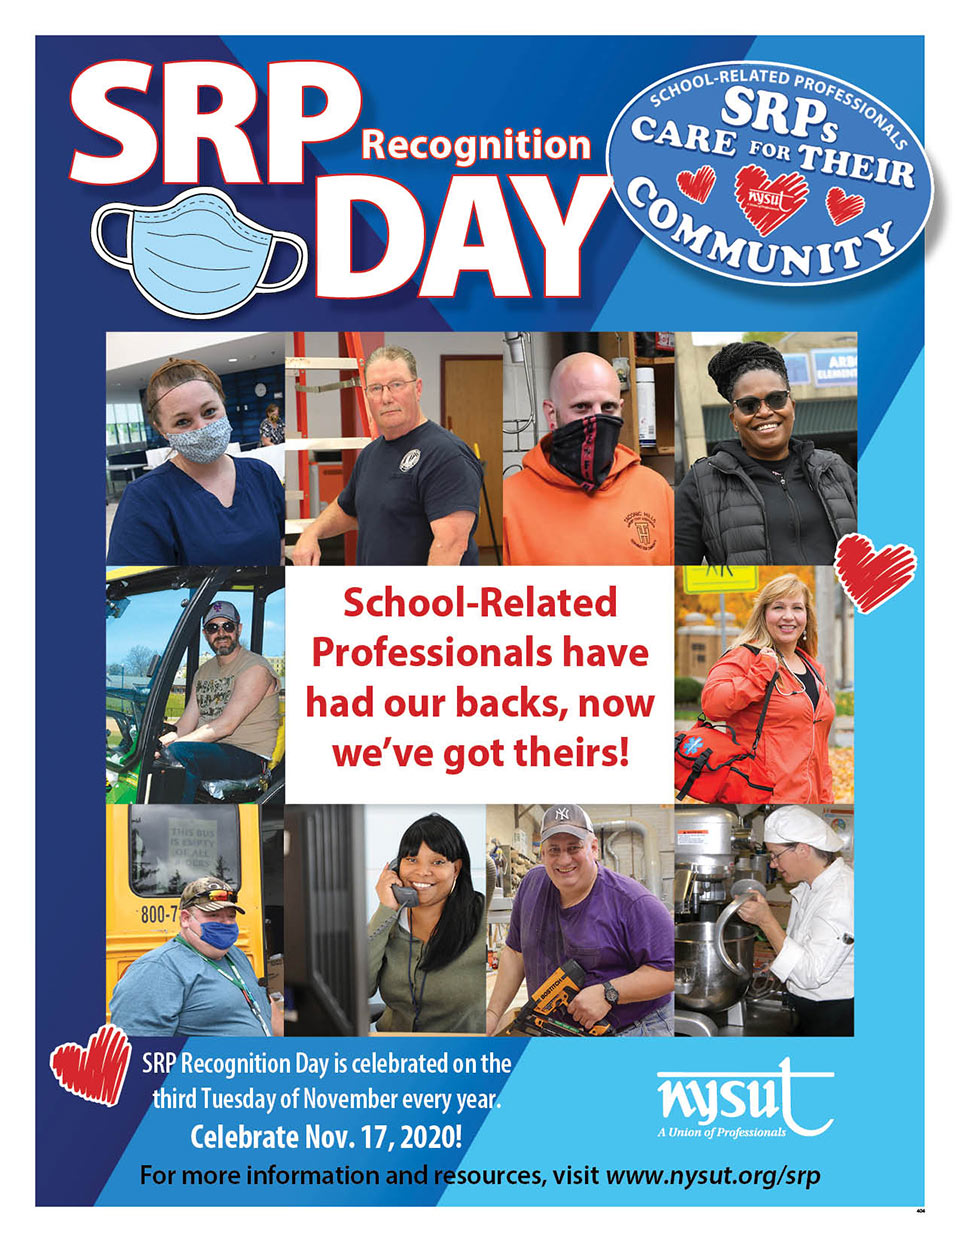 srp day poster 2020